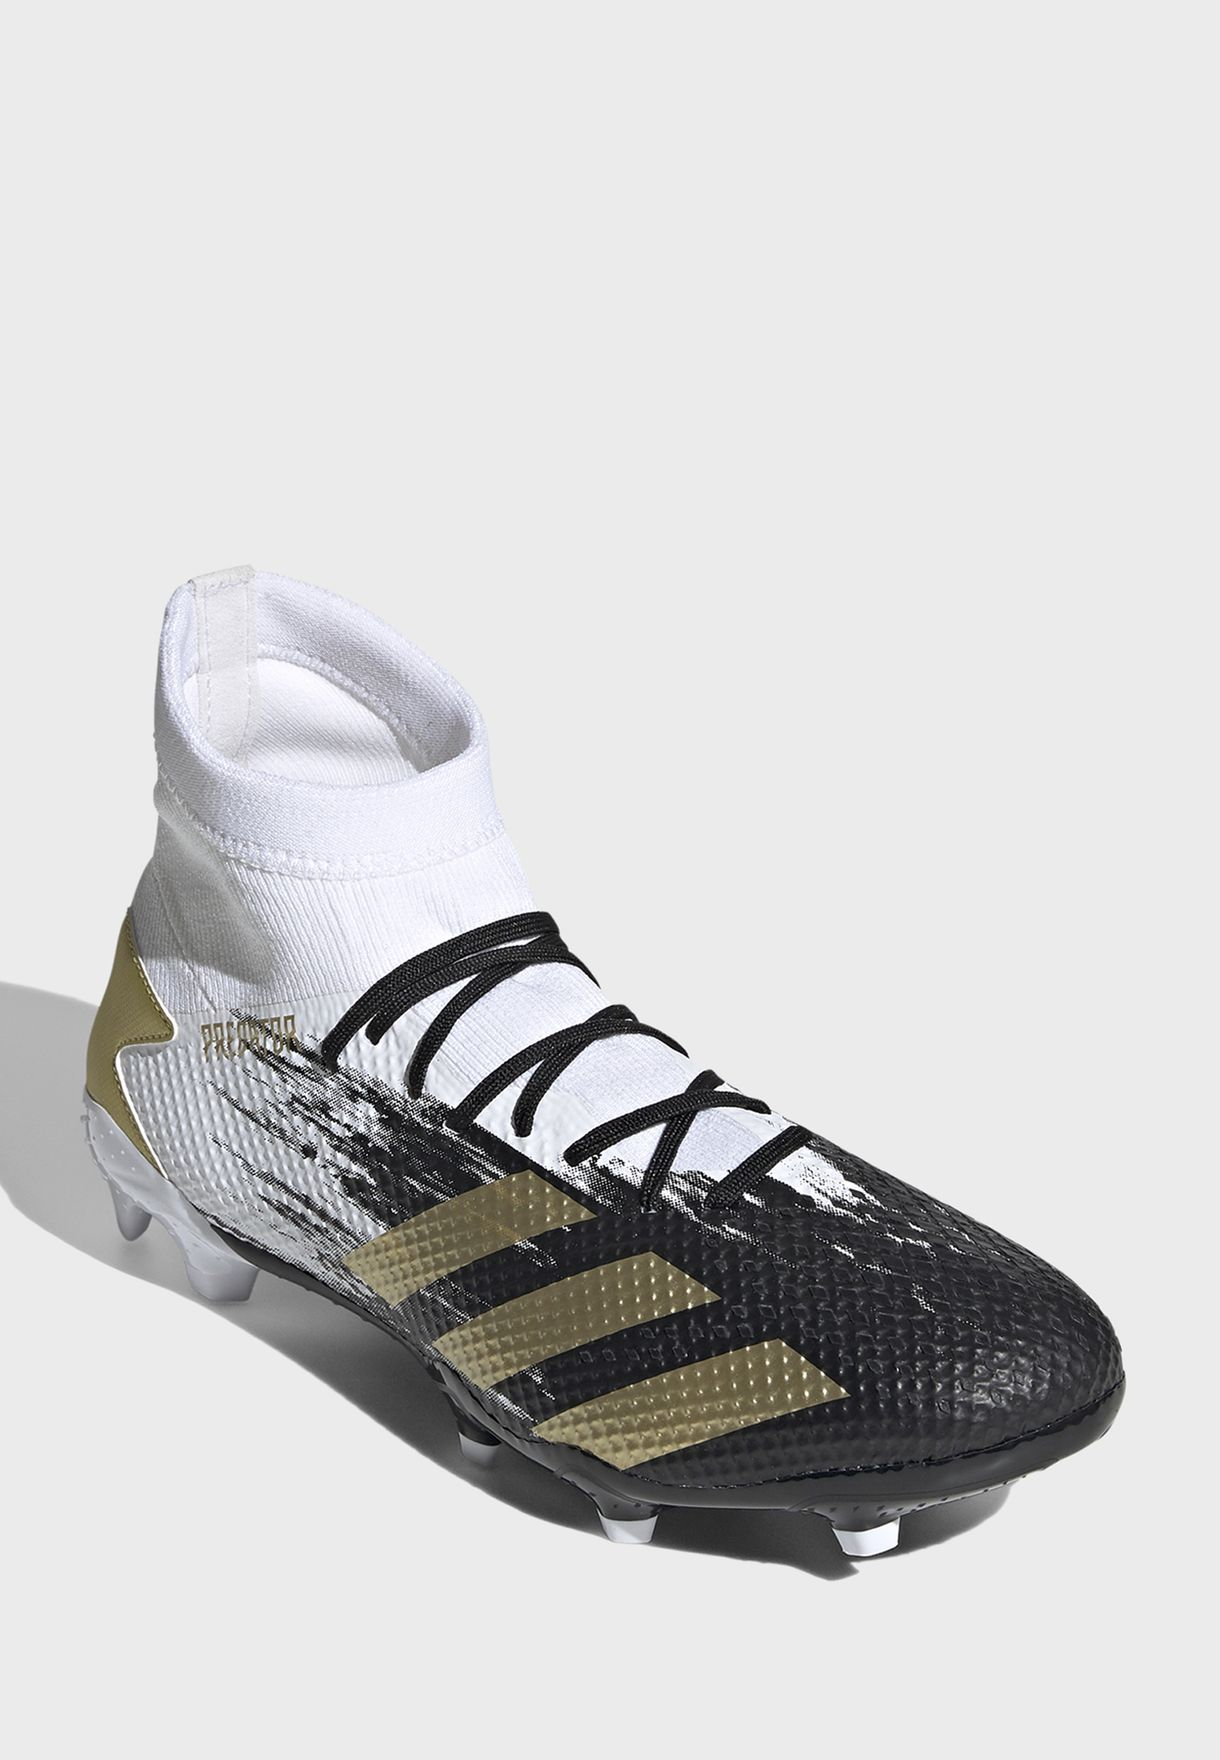 Predator 20.3 Football Soccer Men's Firm Ground